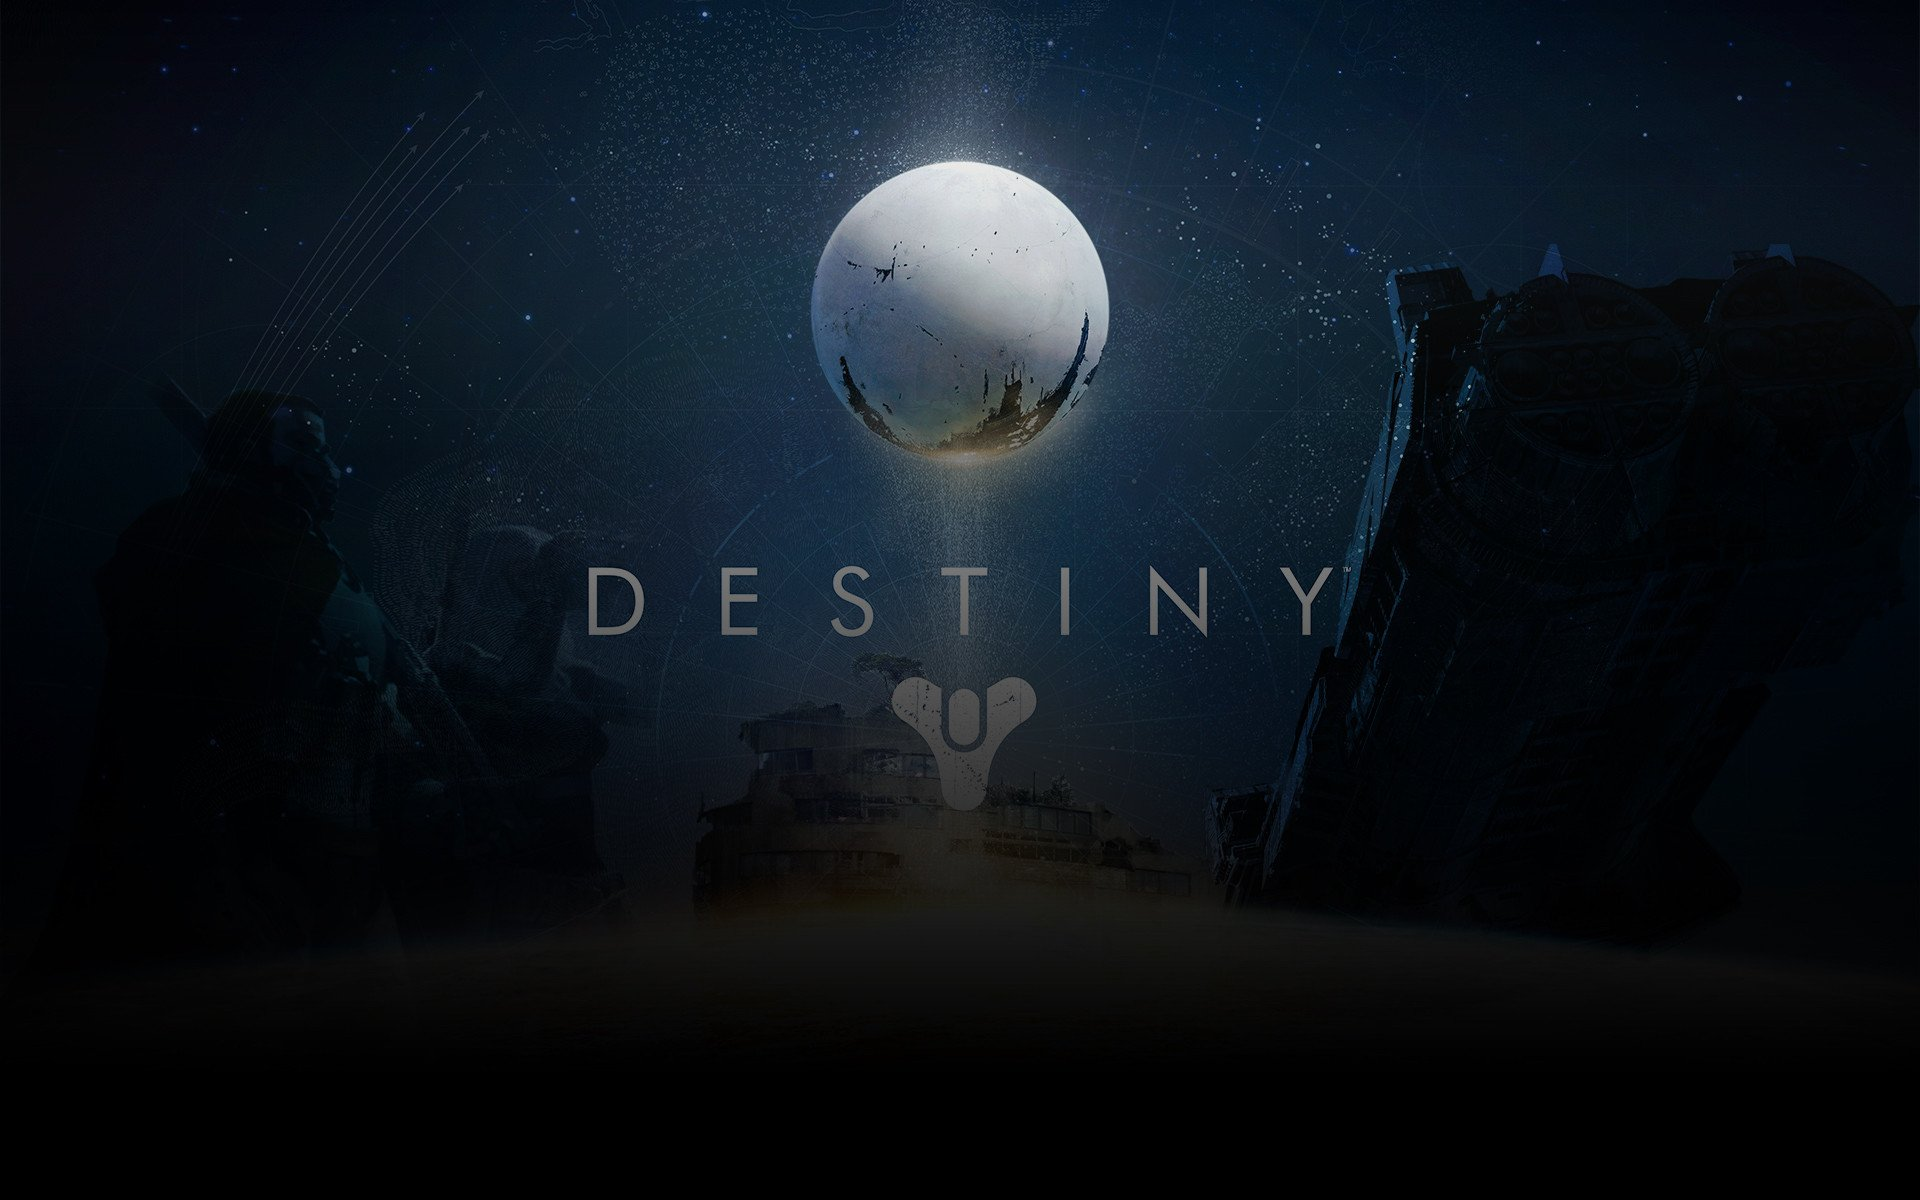 Destiny Full HD Wallpaper and Background Image | 1920x1200 ...